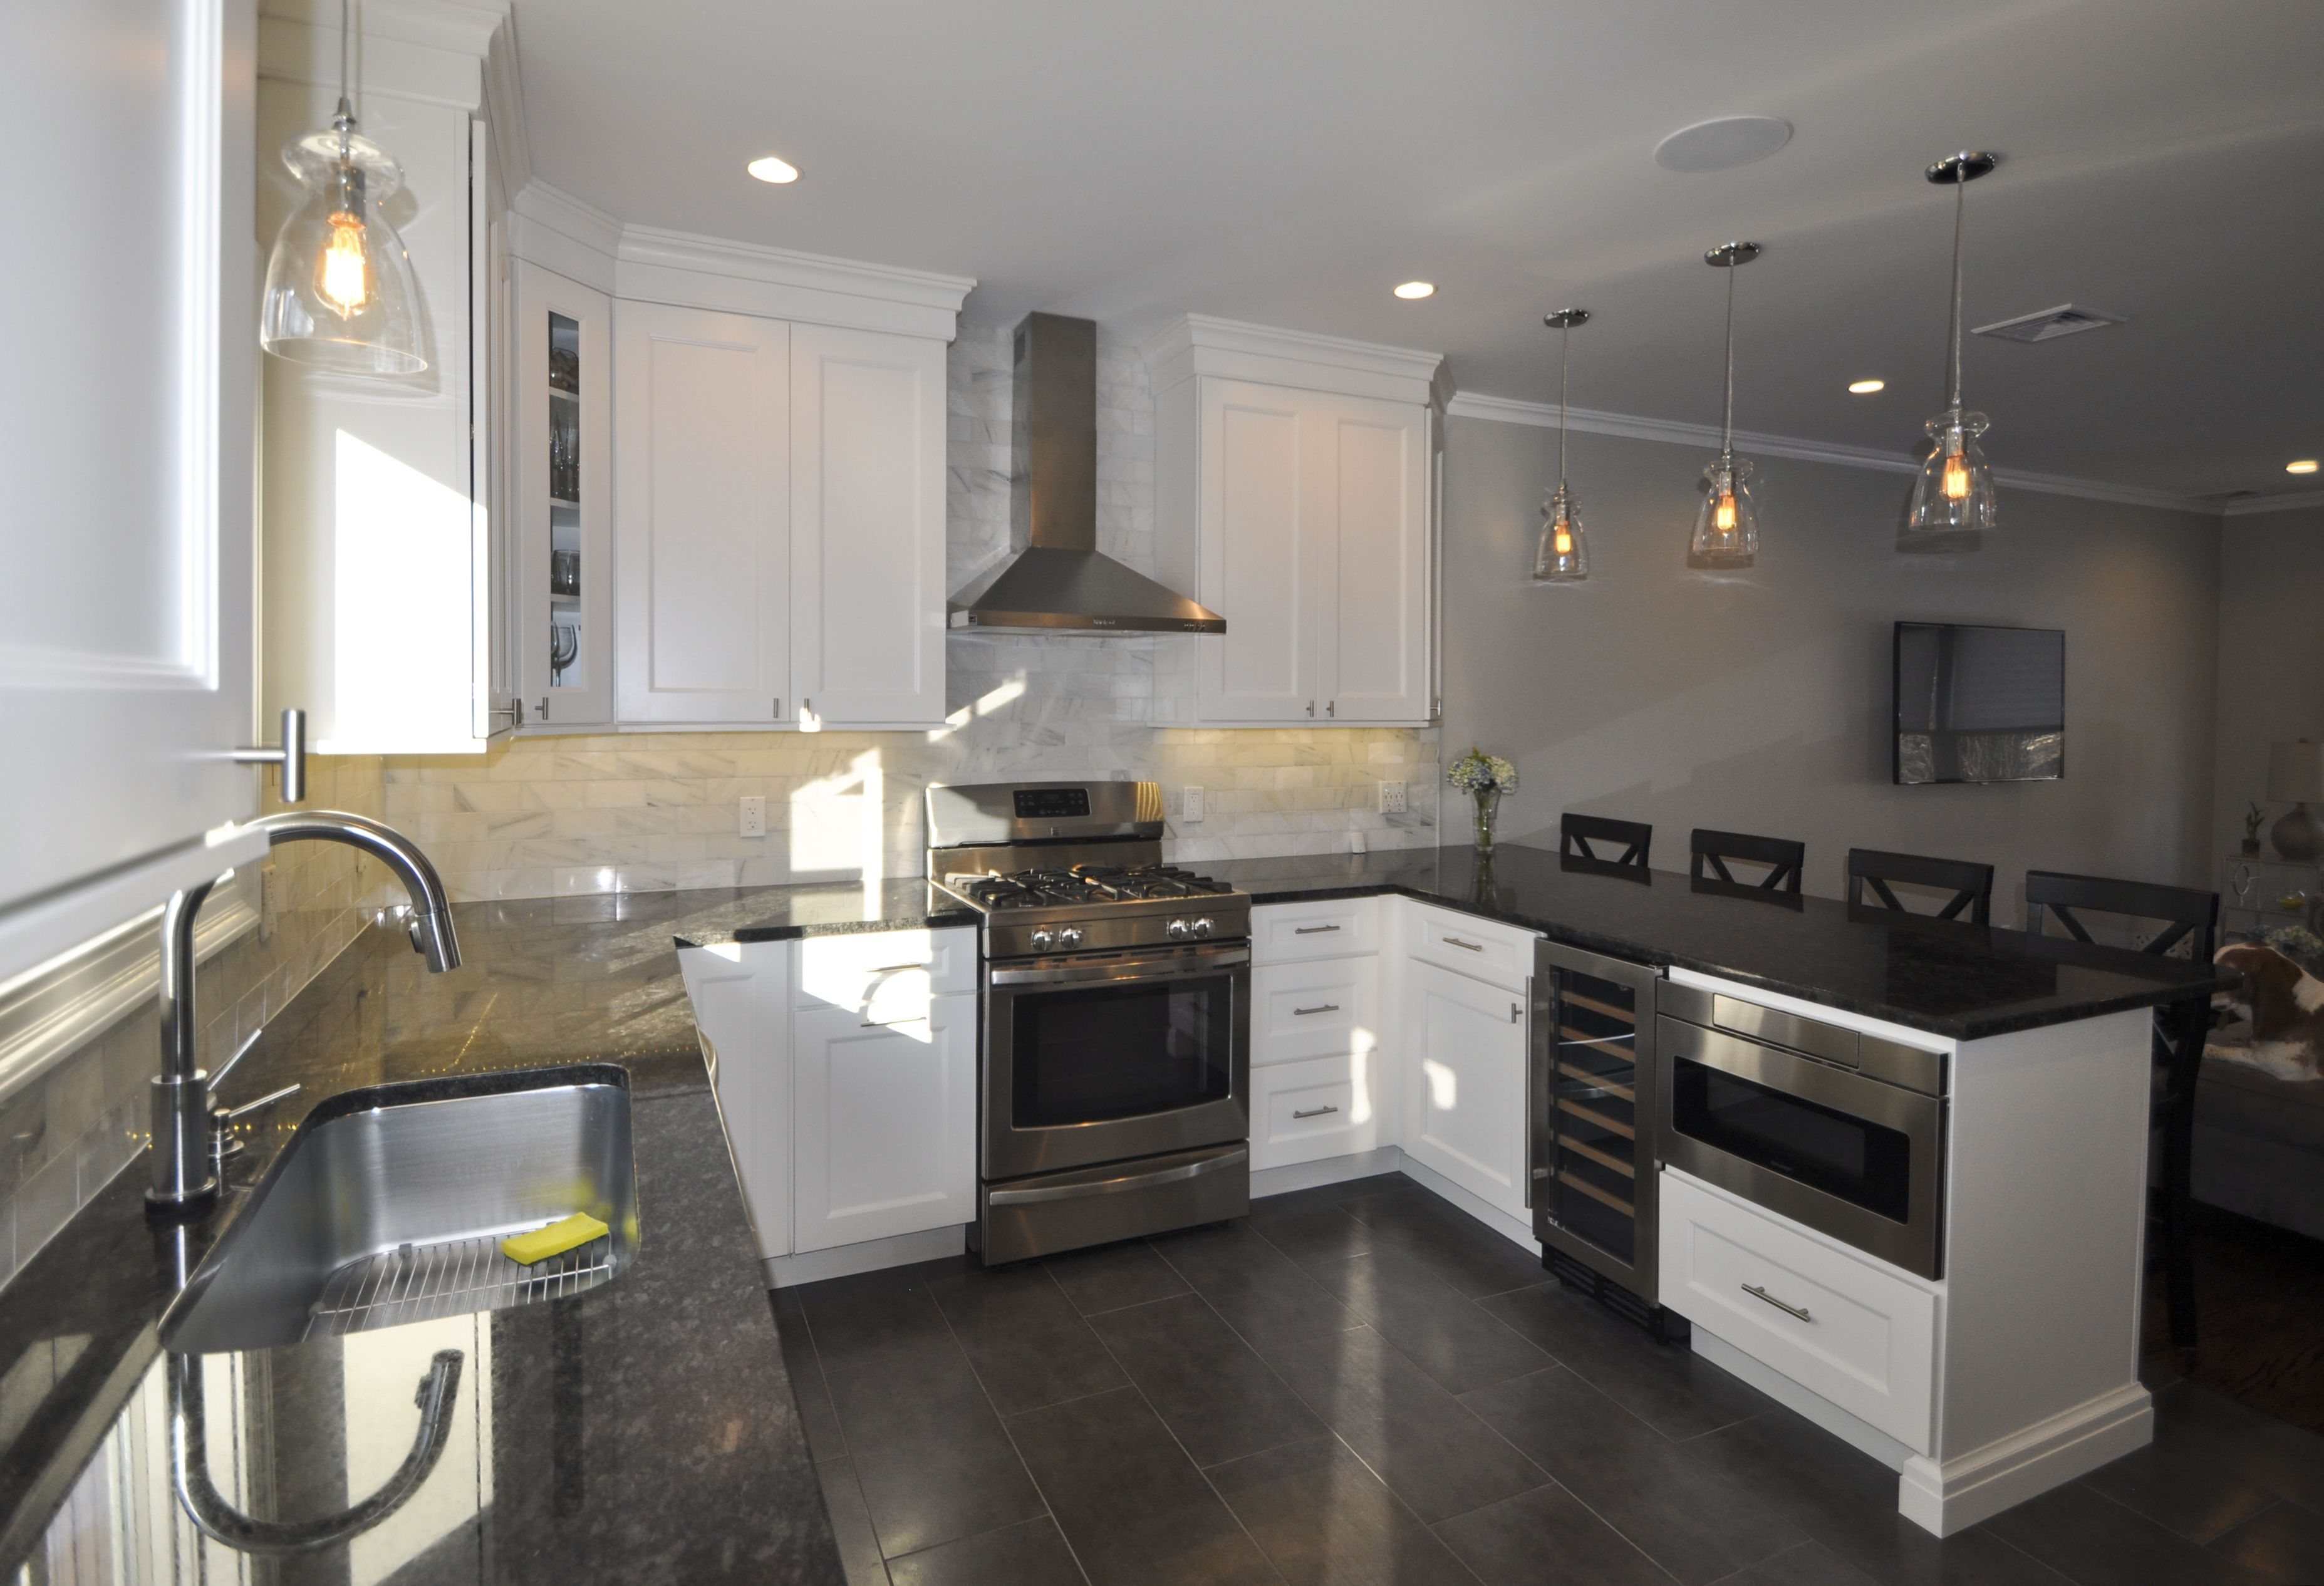 White Shaker Cabinets Wine Fridge And Draw Microwave Kitchen Center Island Island With Seating Kitchen Construction